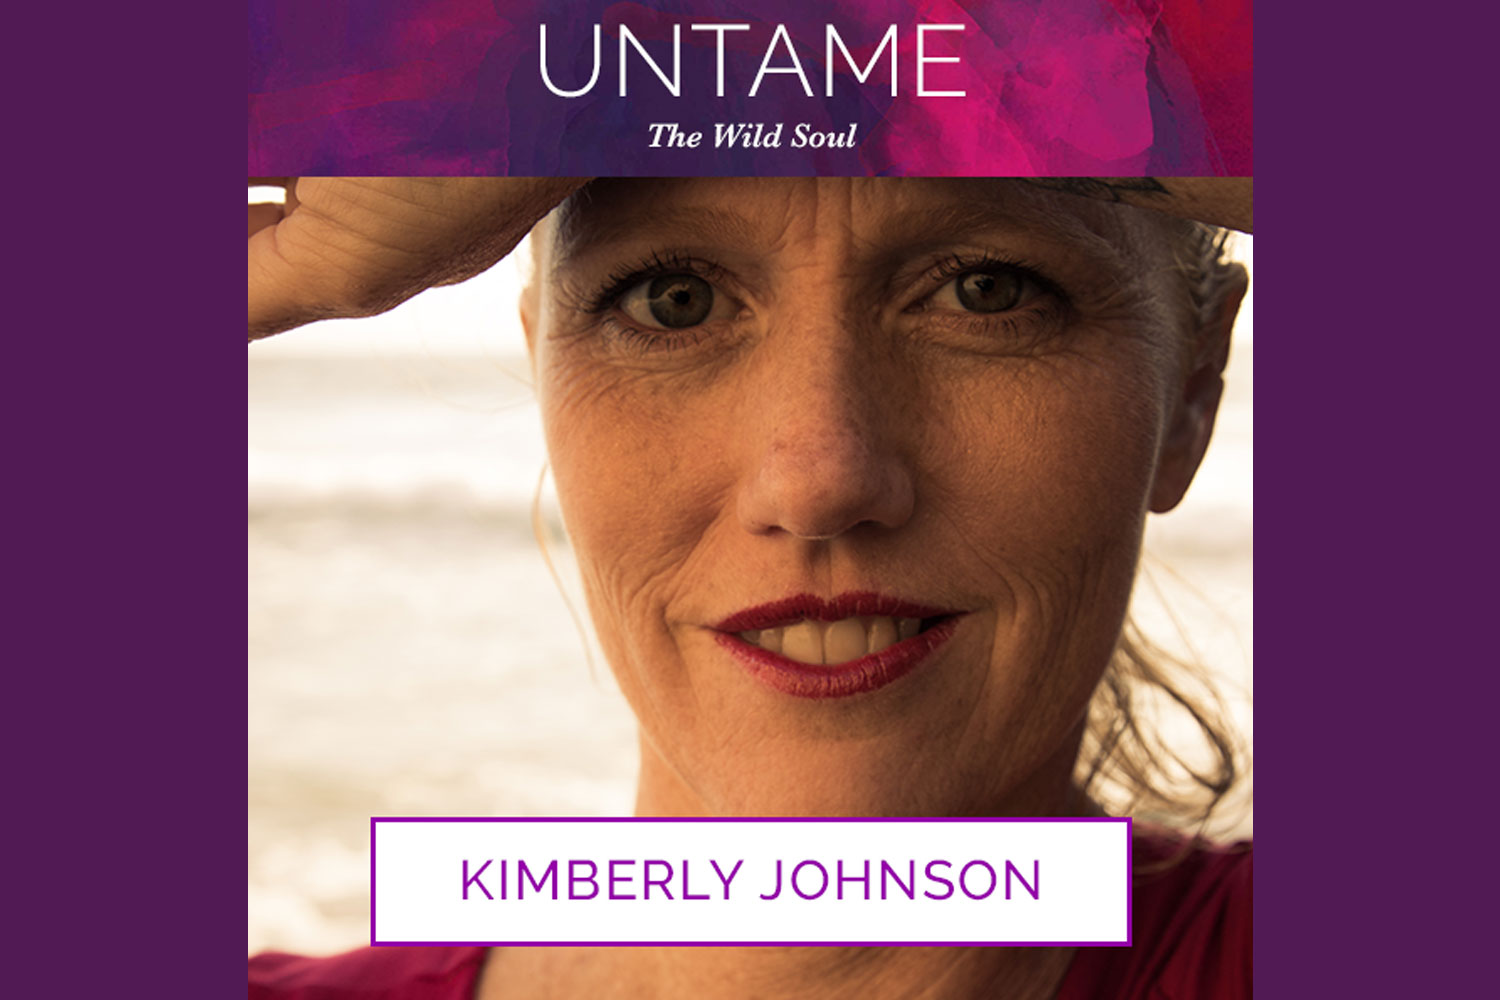 UNTAME THE WILD SOUL - EP221: On Motherhood, Mothering, And Identity